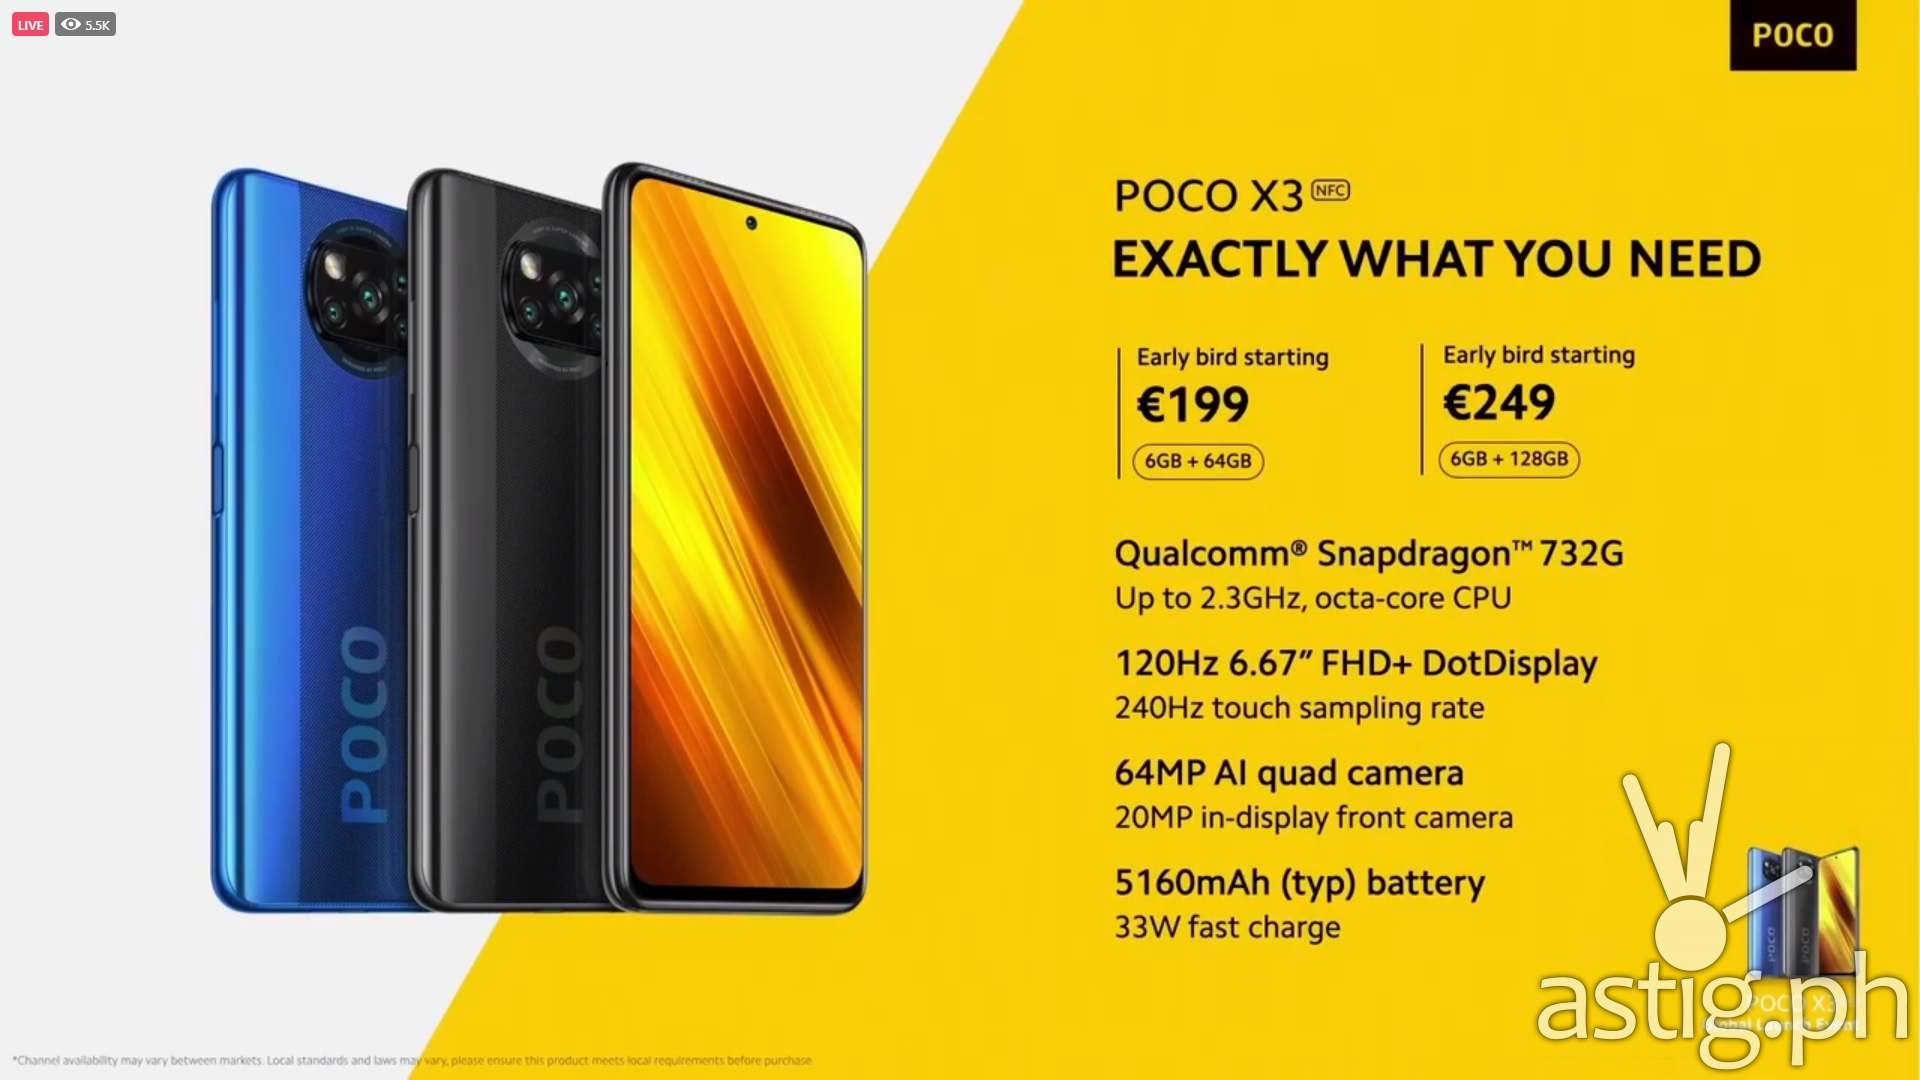 POCO X3 specs price global